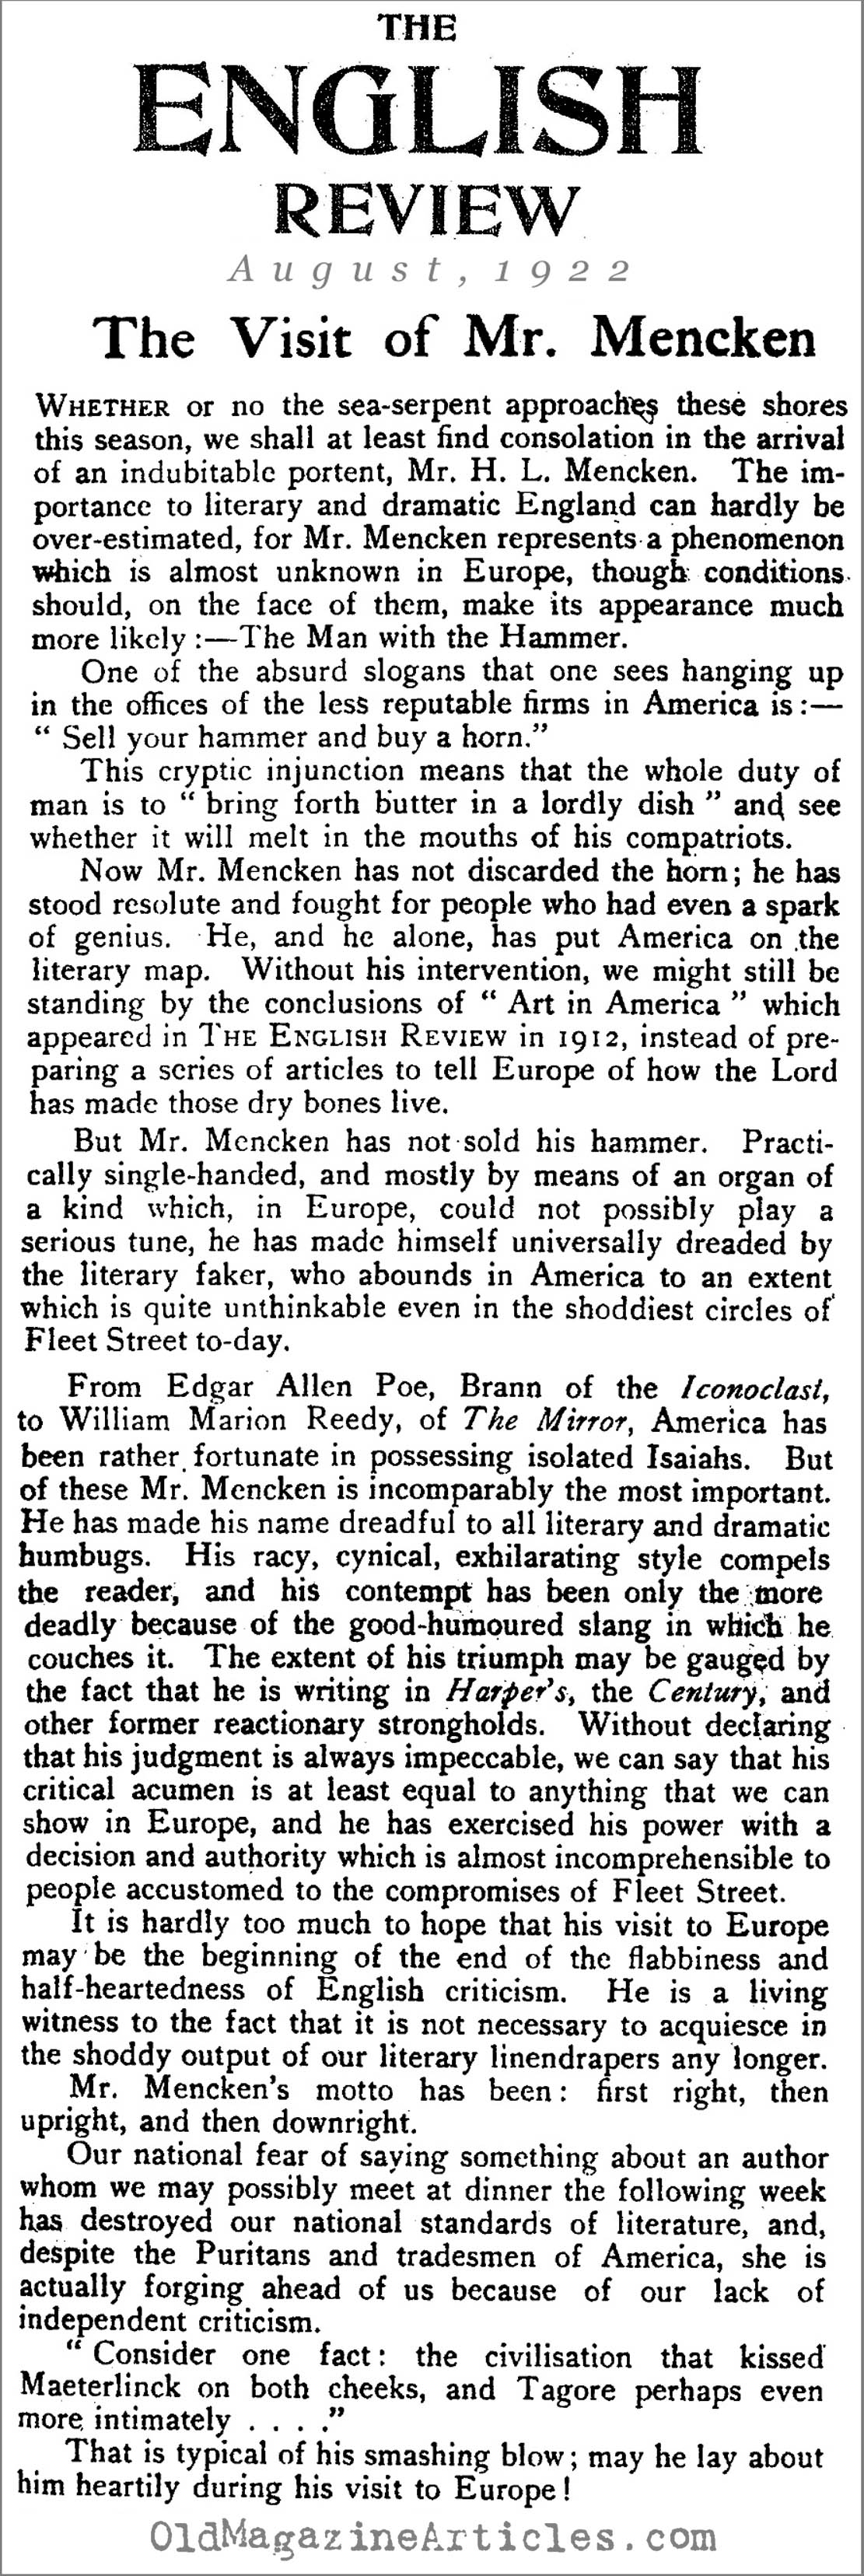 hl mencken magazine article magazine article about hl mencken a profile of h l mencken the english review 1922